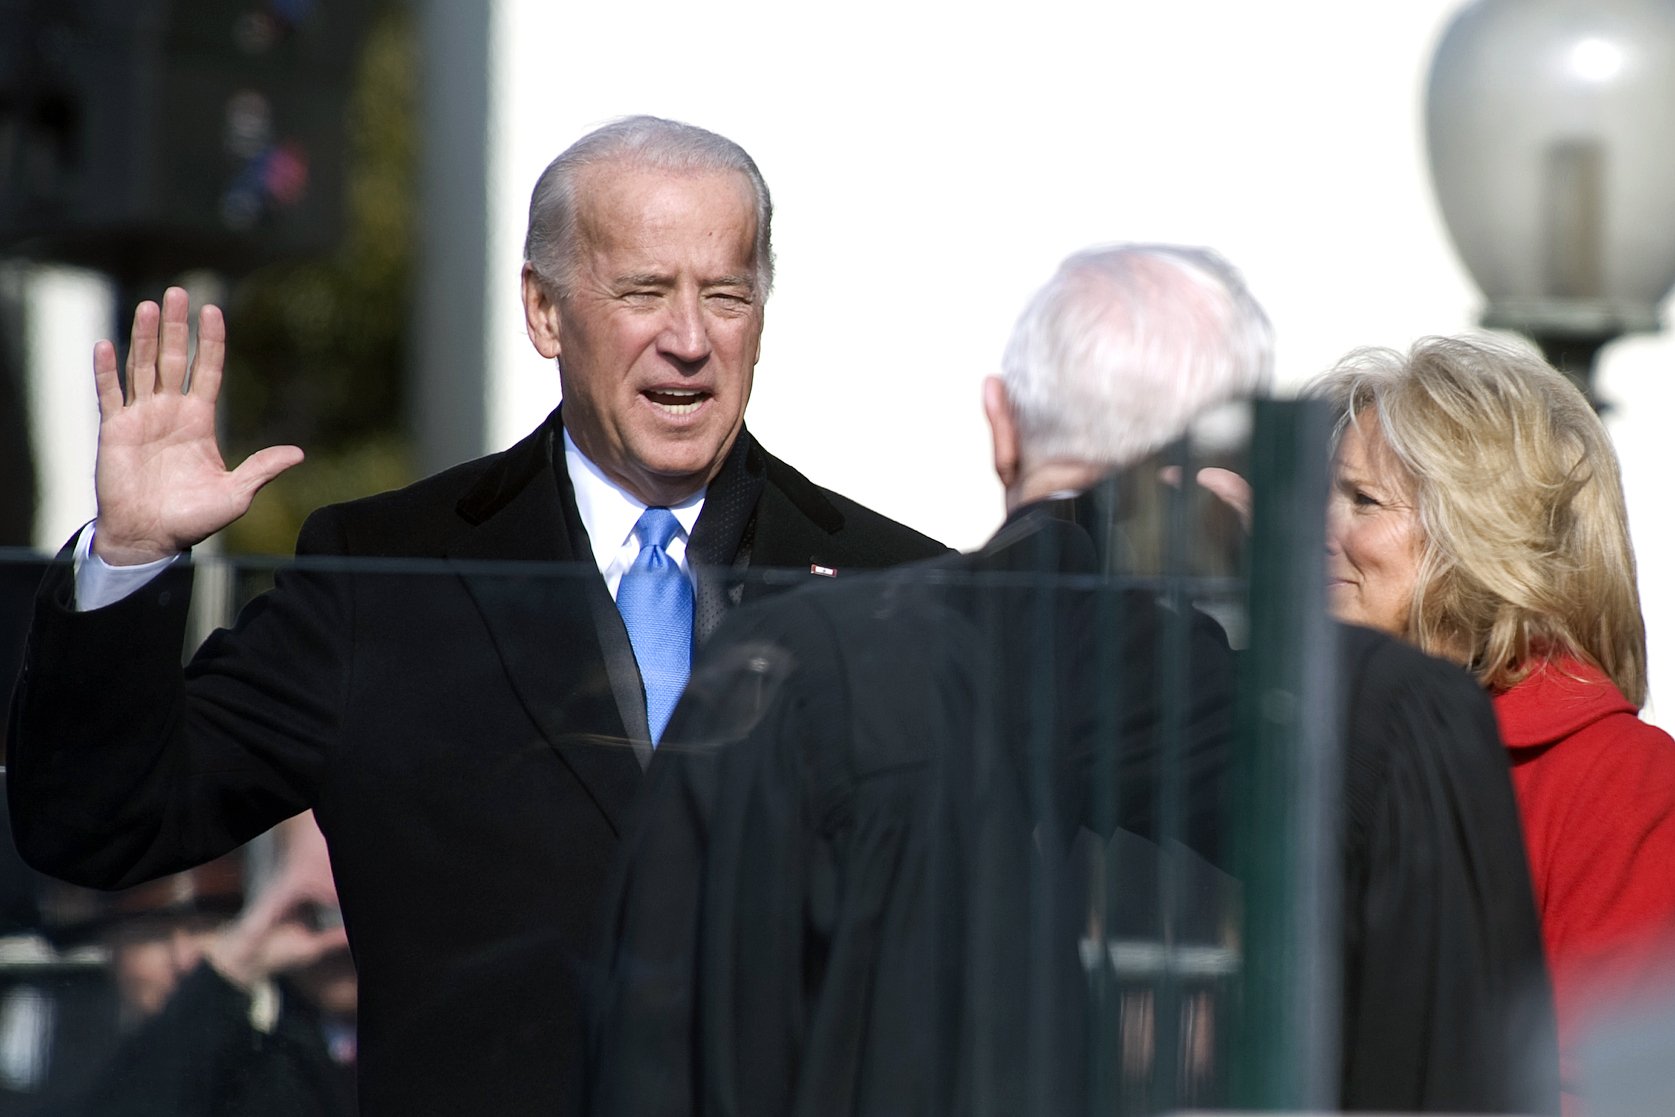 090120-N-0696M-204 Vice President Joe Biden takes the oath of office at the 56th Presidential Inauguration, Washington, D.C., Jan. 20, 2009 (DoD photo by Mass Communication Specialist 1st Class Chad J. McNeeley/Released)